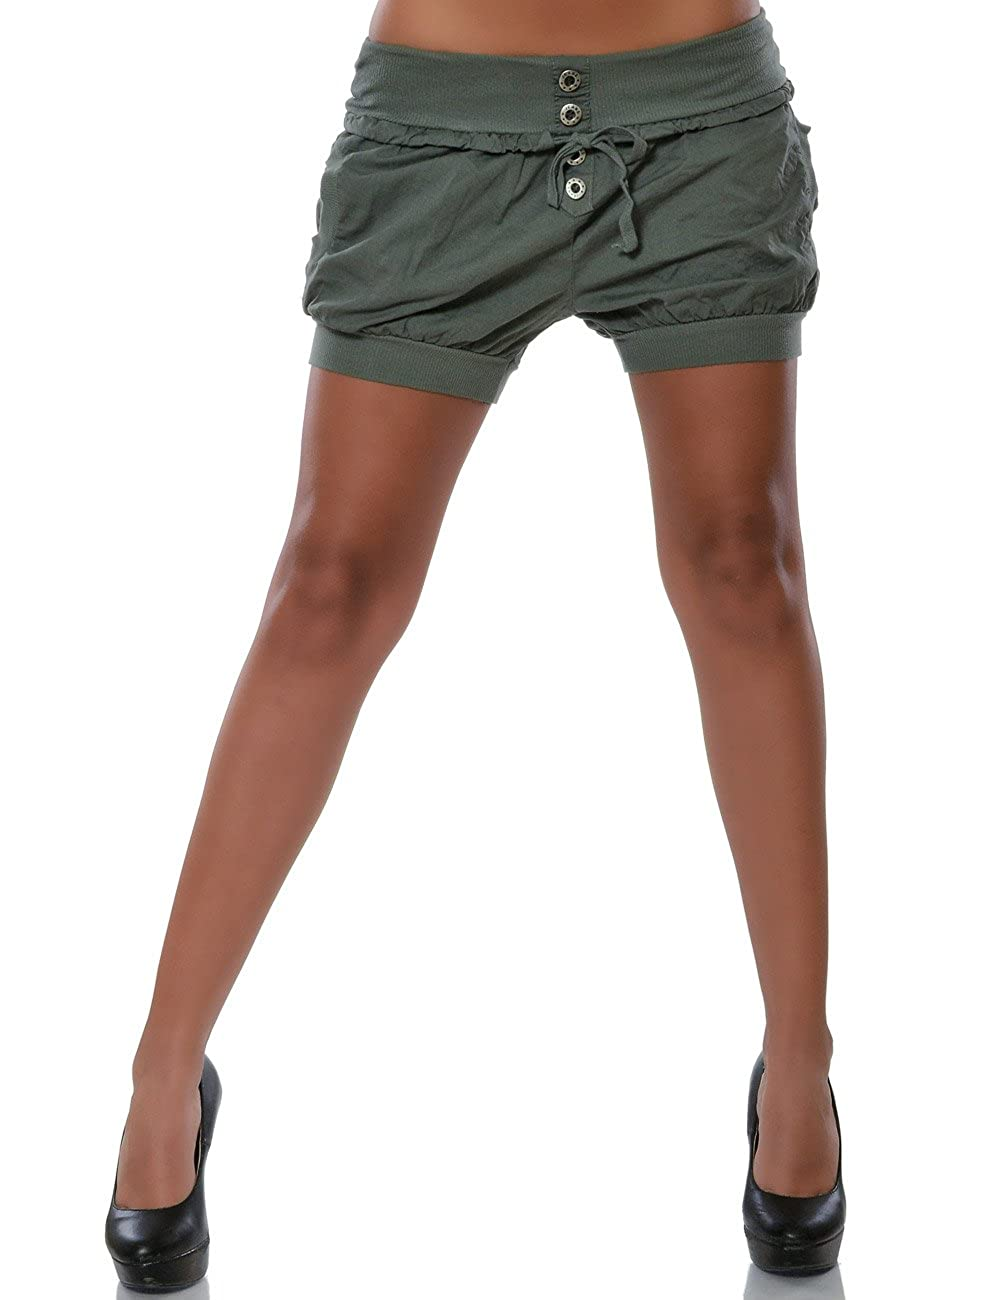 Damen Shorts Hot-Pants Kurze Sommer Hose DA 15655 DA15655